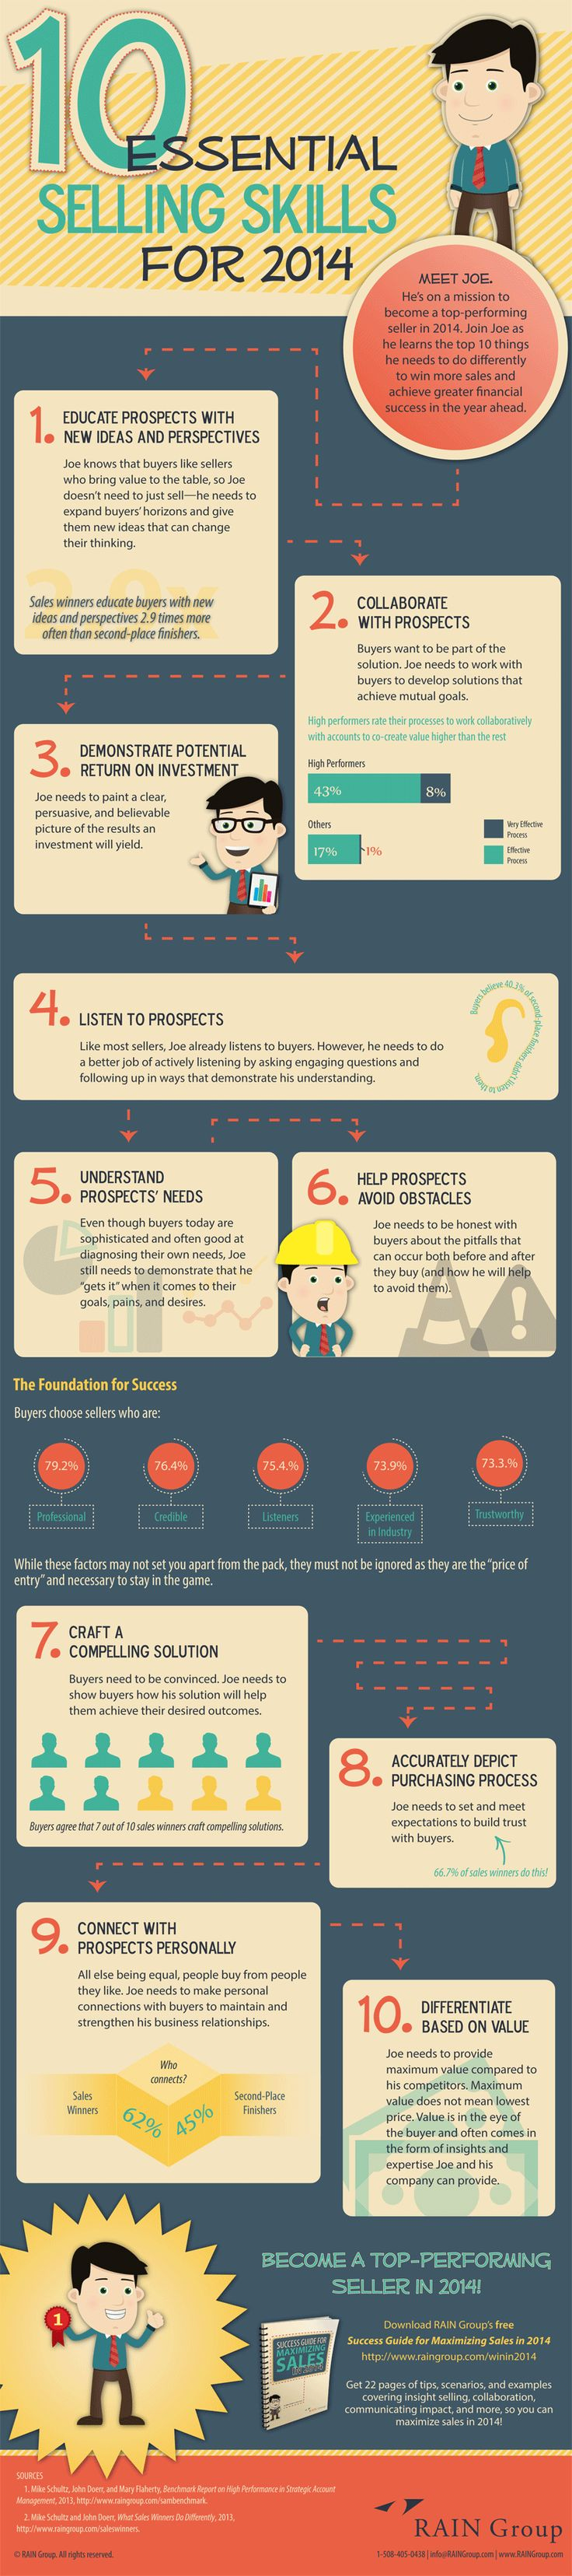 10 Effective Selling Skills to Increase Your Closing Rate #Infographic